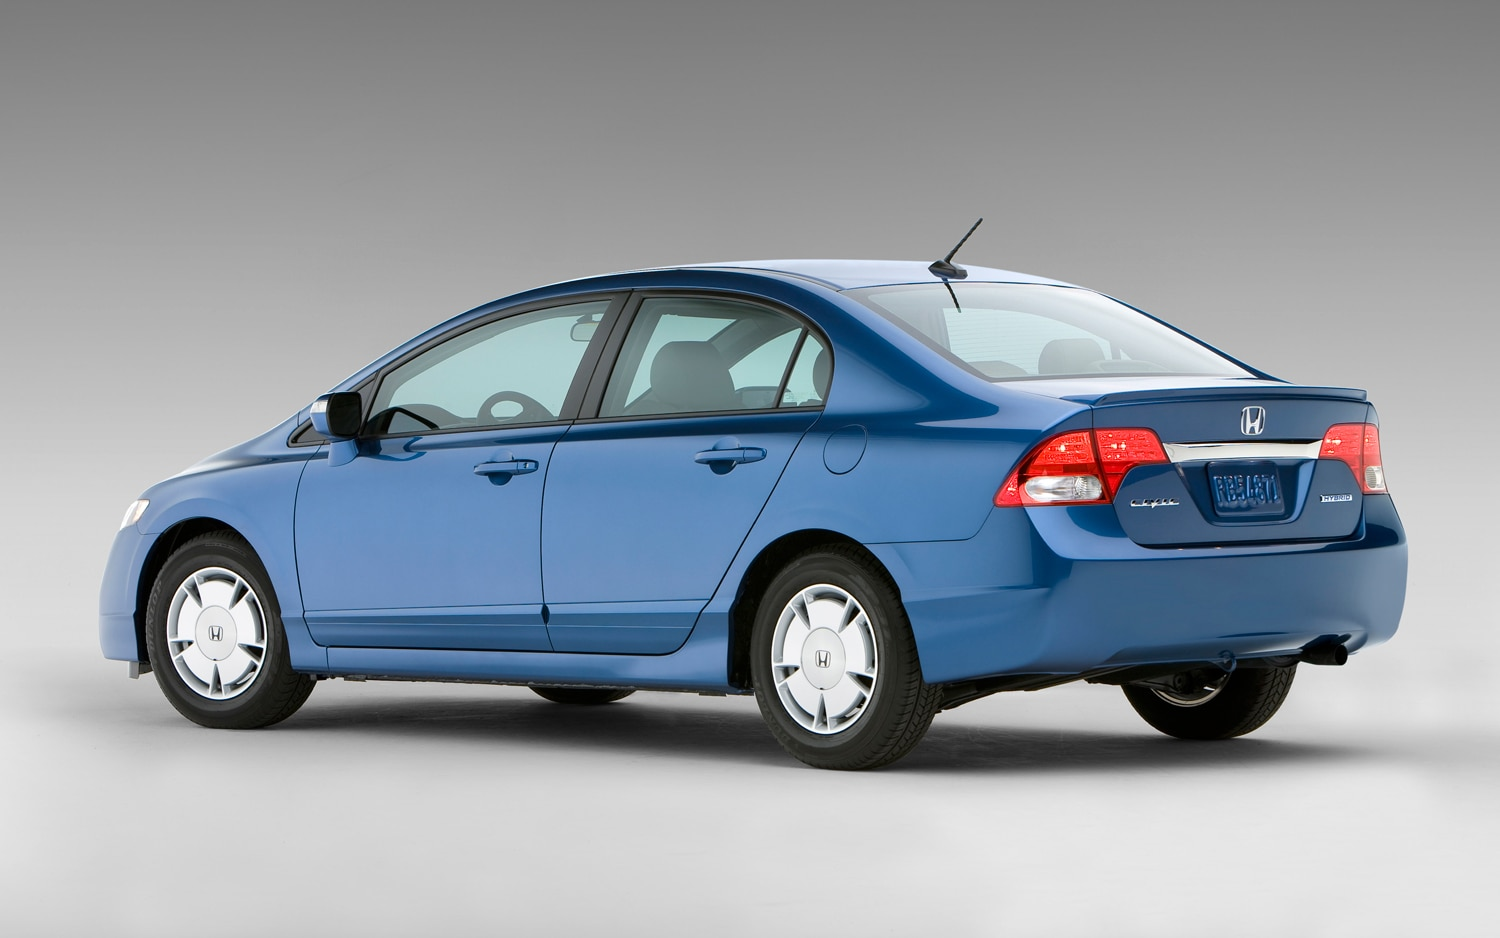 Honda Civic Hybrid Owner Takes Fuel Economy Complaints To